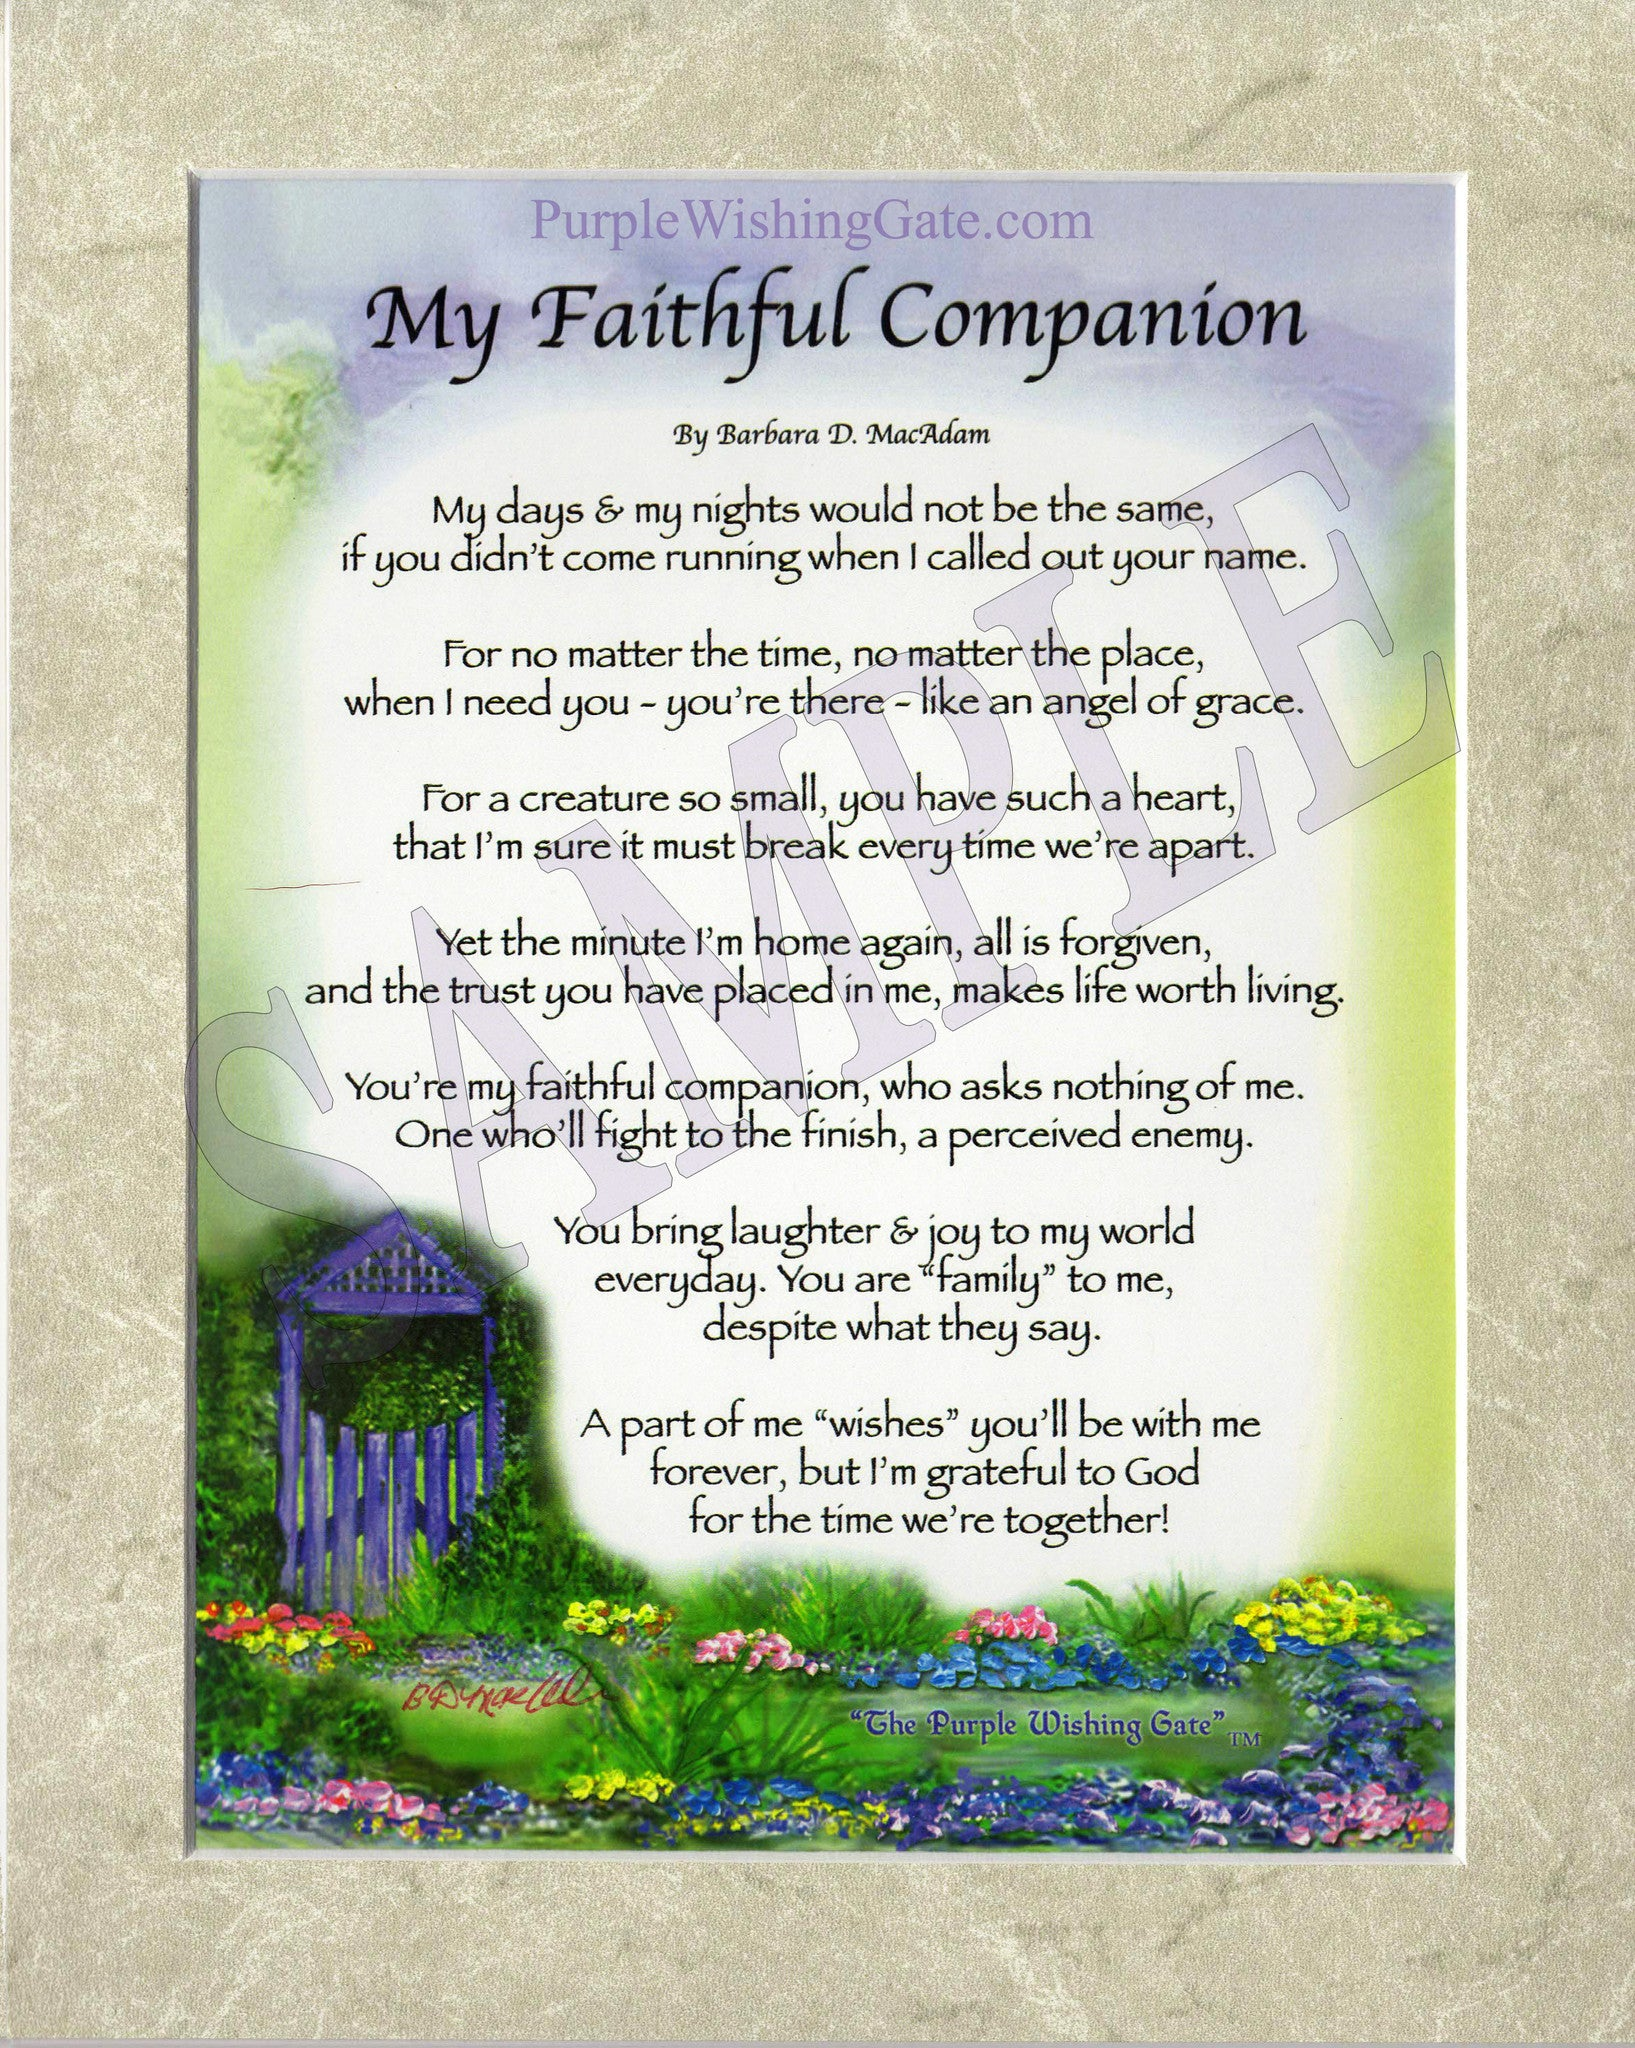 My Faithful Companion (8x10) - 8x10 Custom Matted Clearance - PurpleWishingGate.com